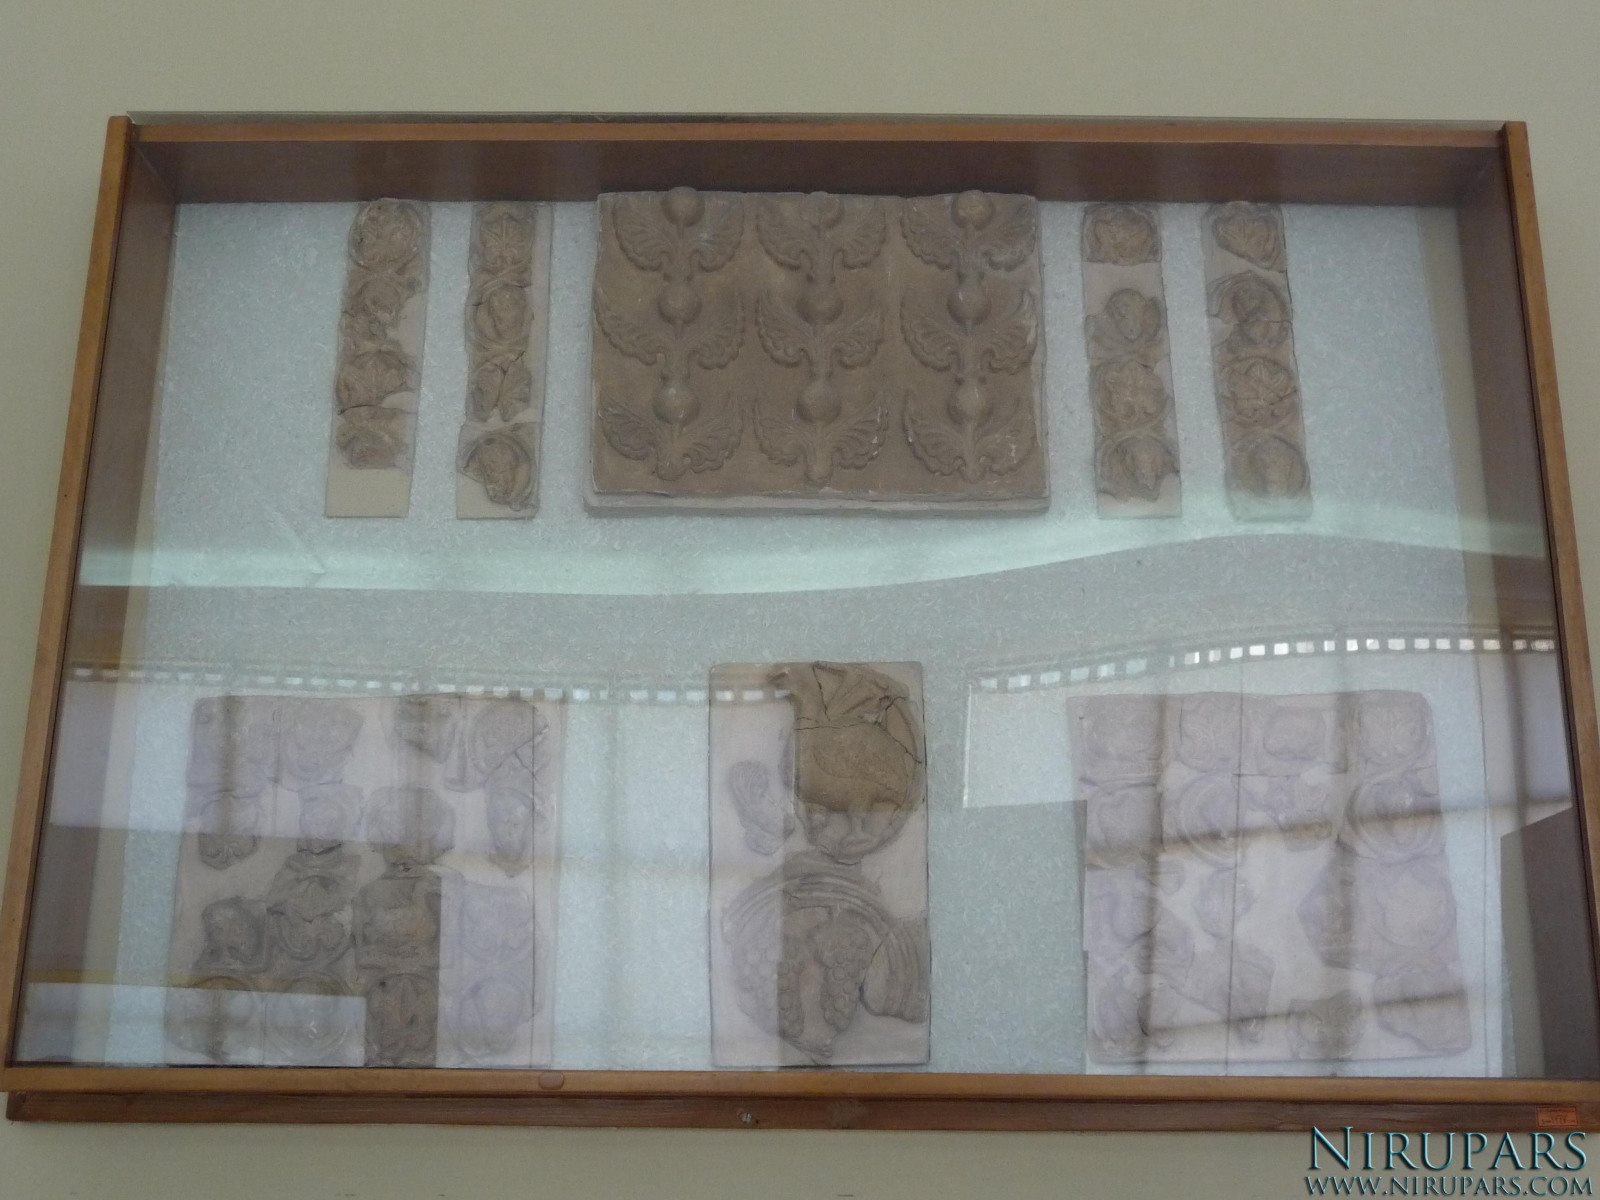 National Museum of Iran - Reliefs - Figures - Ornament Fragments